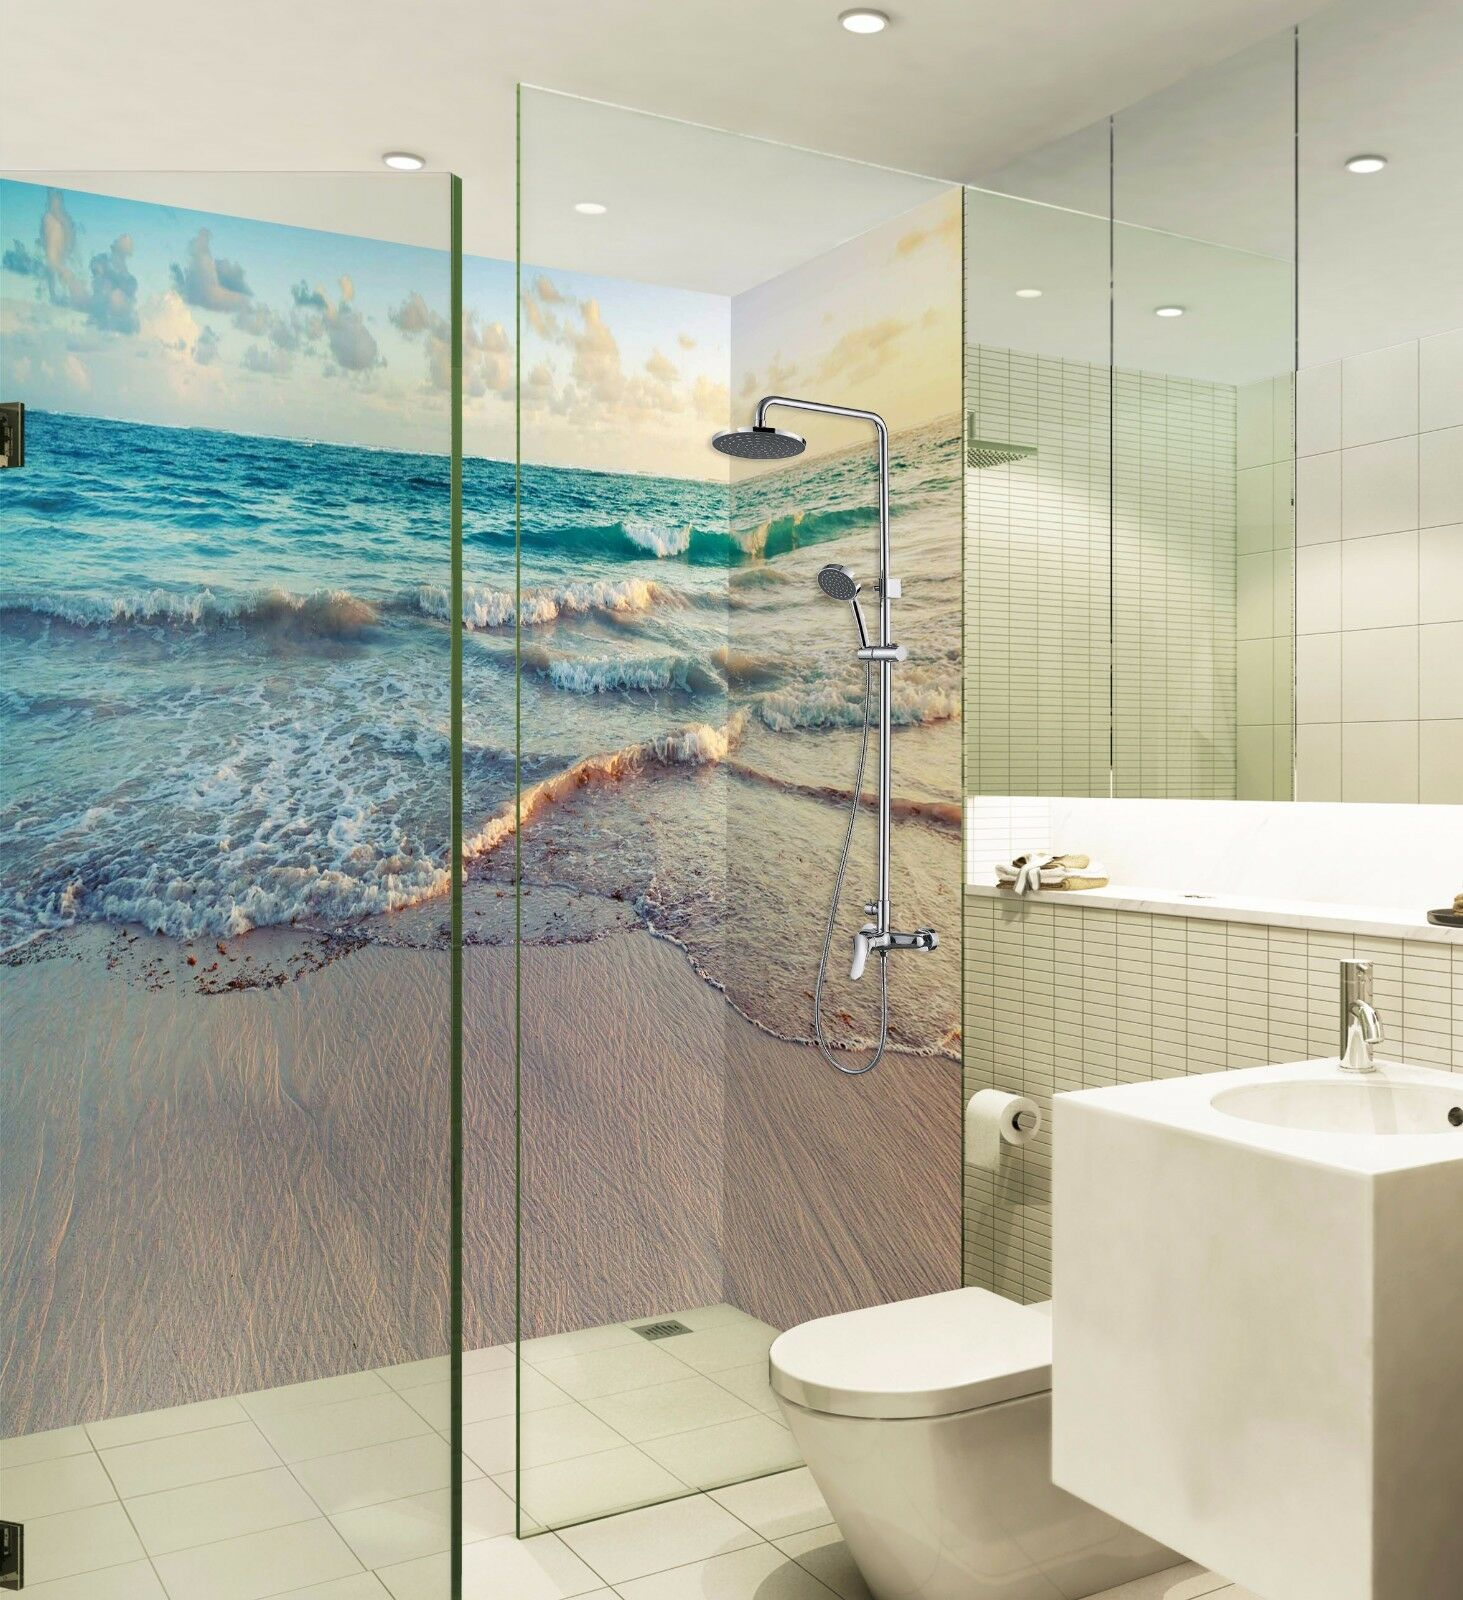 3D Seabeach 784  WallPaper Bathroom Print Decal Wall Deco AJ WALLPAPER AU